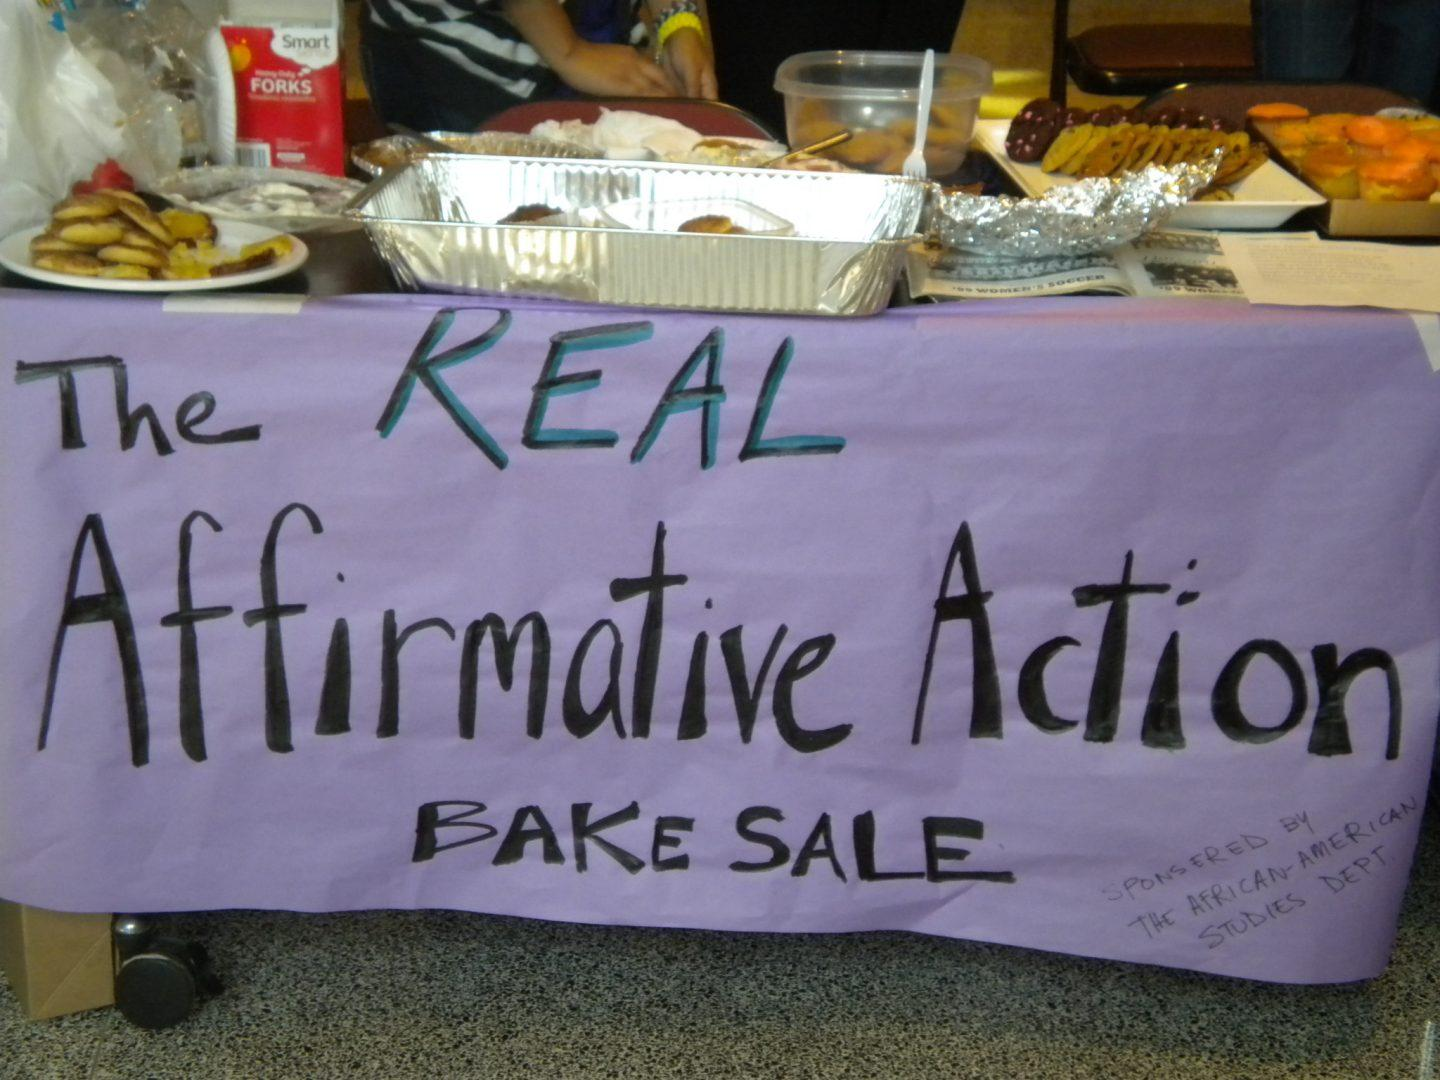 Bake Sale Held at Fordham to Educate Students on Real Affirmative Action